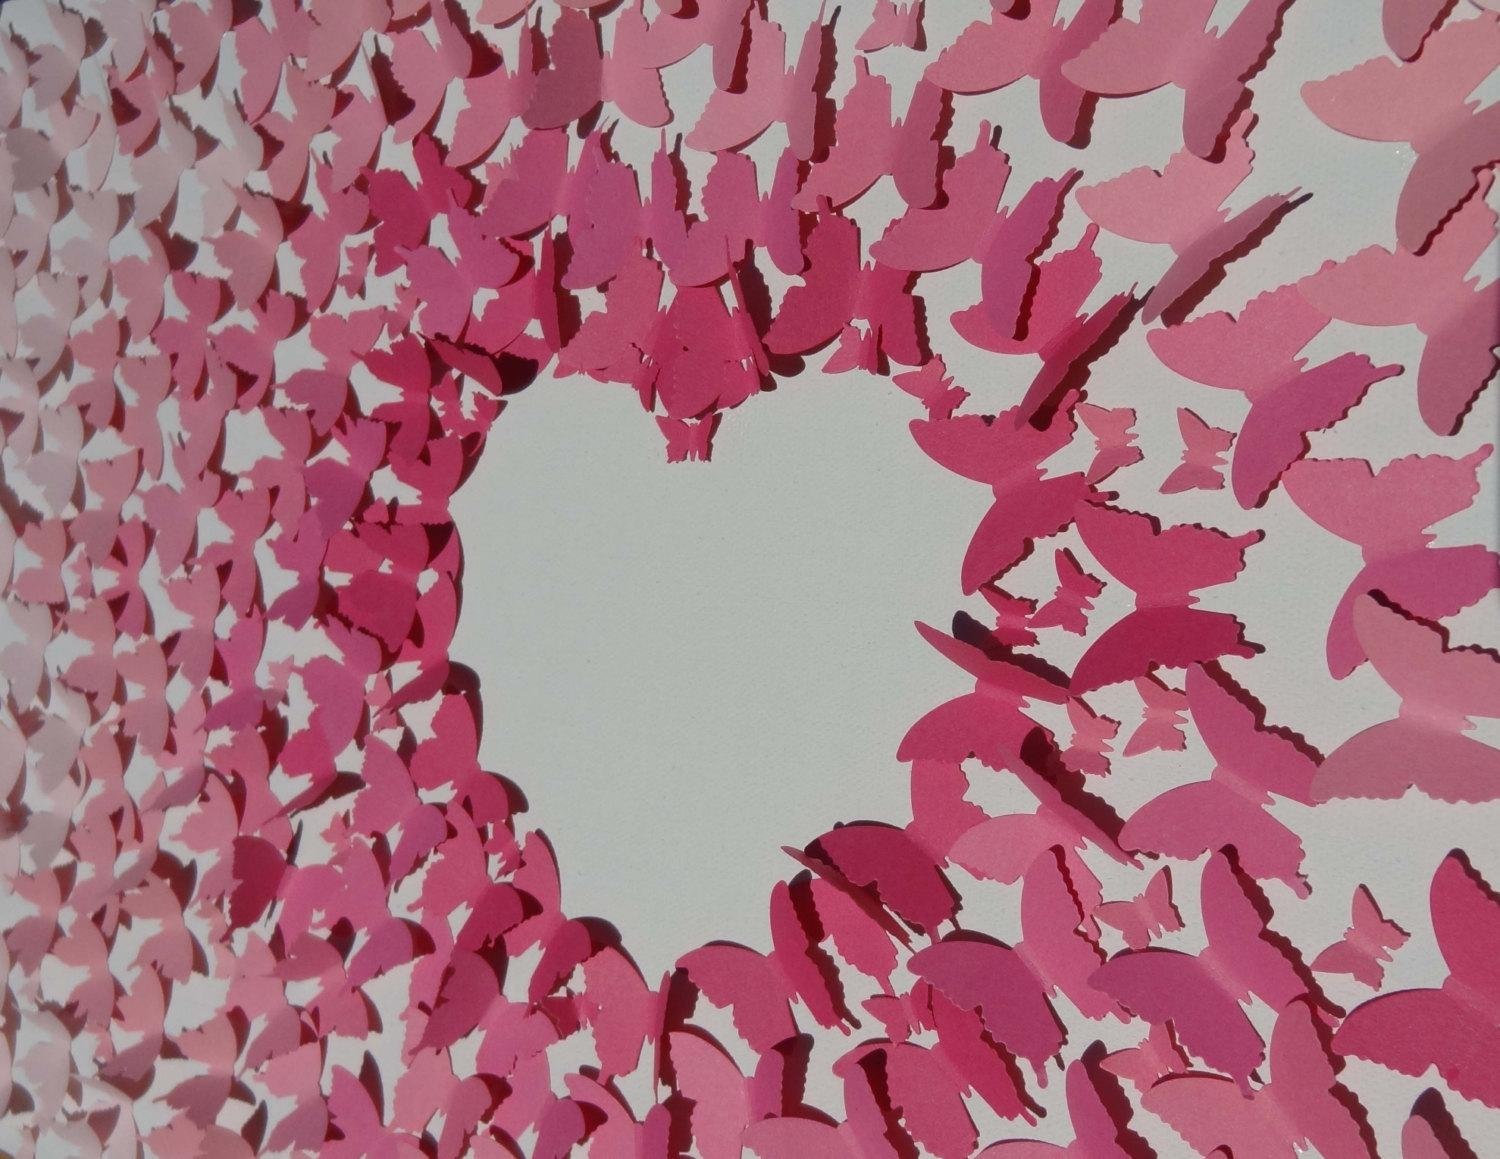 Butterfly Wall Art Pink Ombre' 3D Heart Negative Space Intended For Pink Butterfly Wall Art (View 20 of 20)